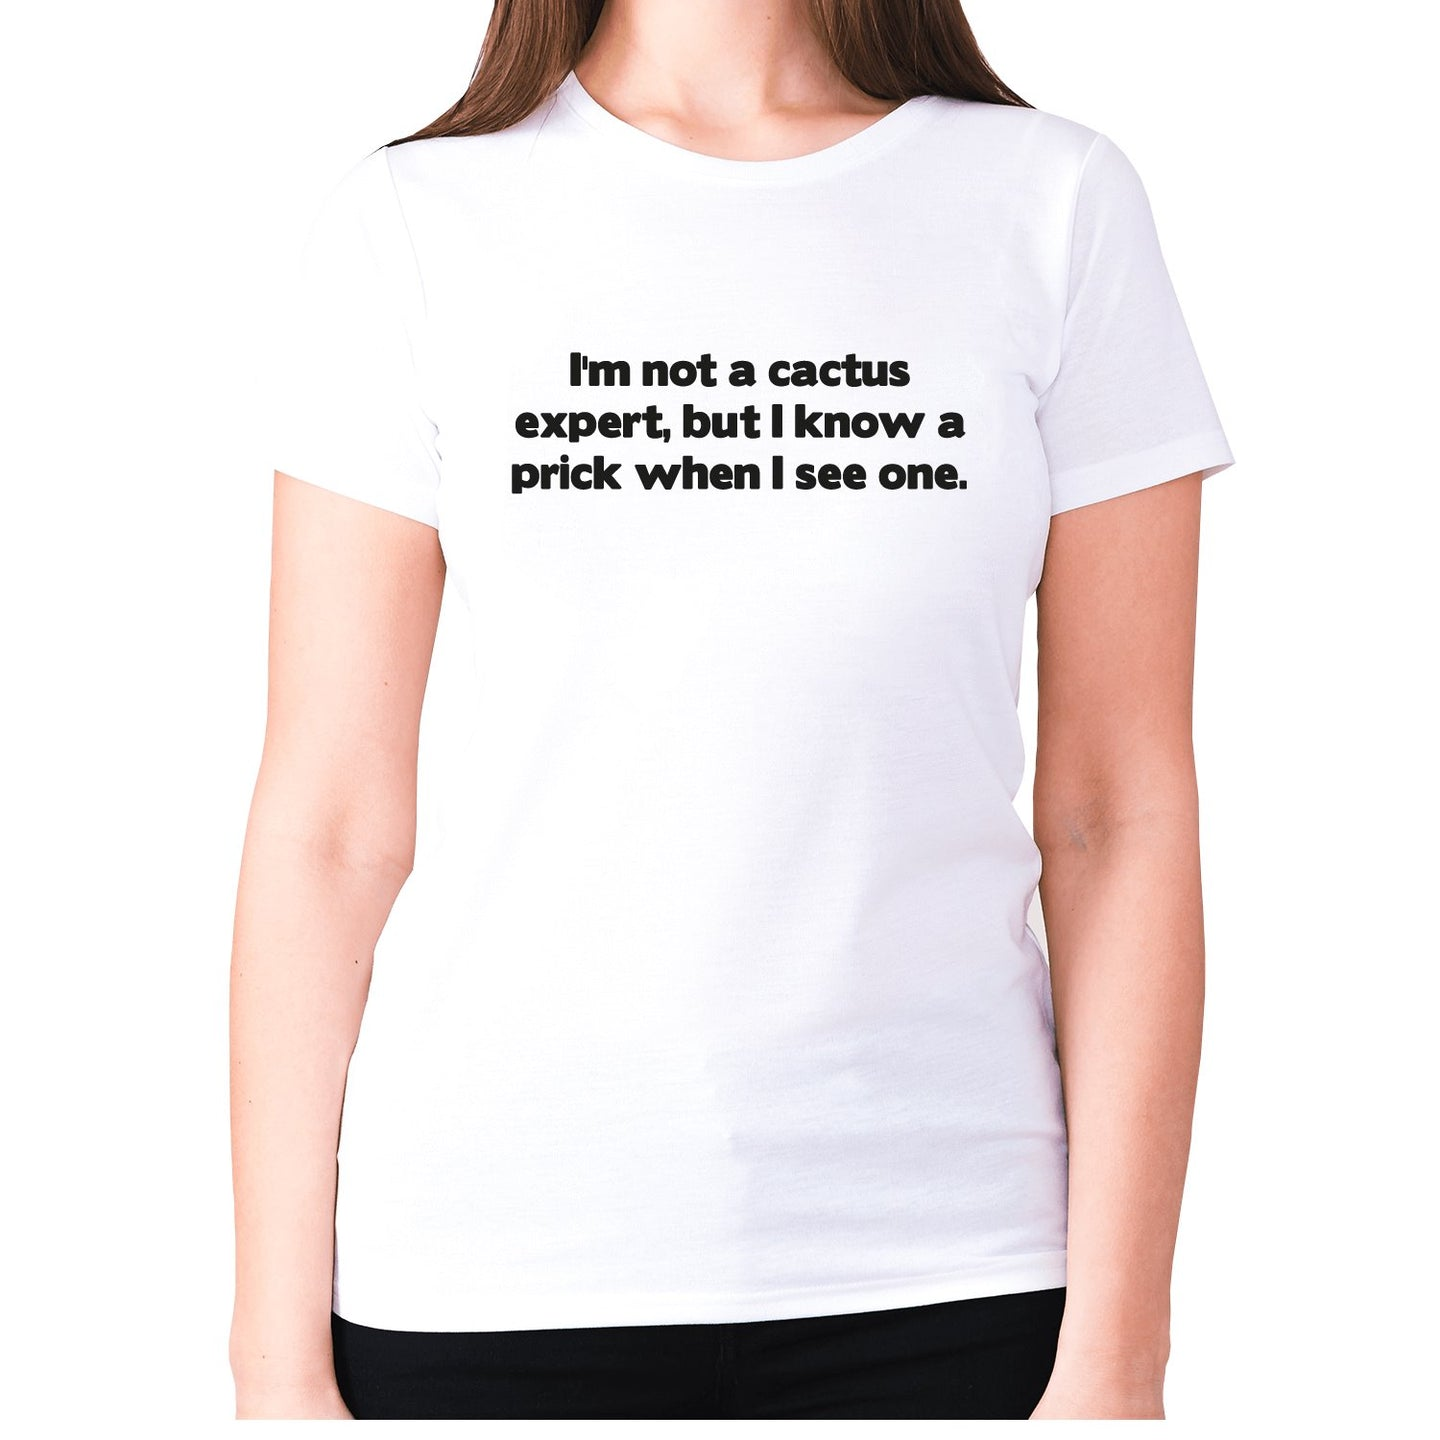 I'm not a cactus expert, but i know a prick when I see one - women's premium t-shirt - White / S - Graphic Gear